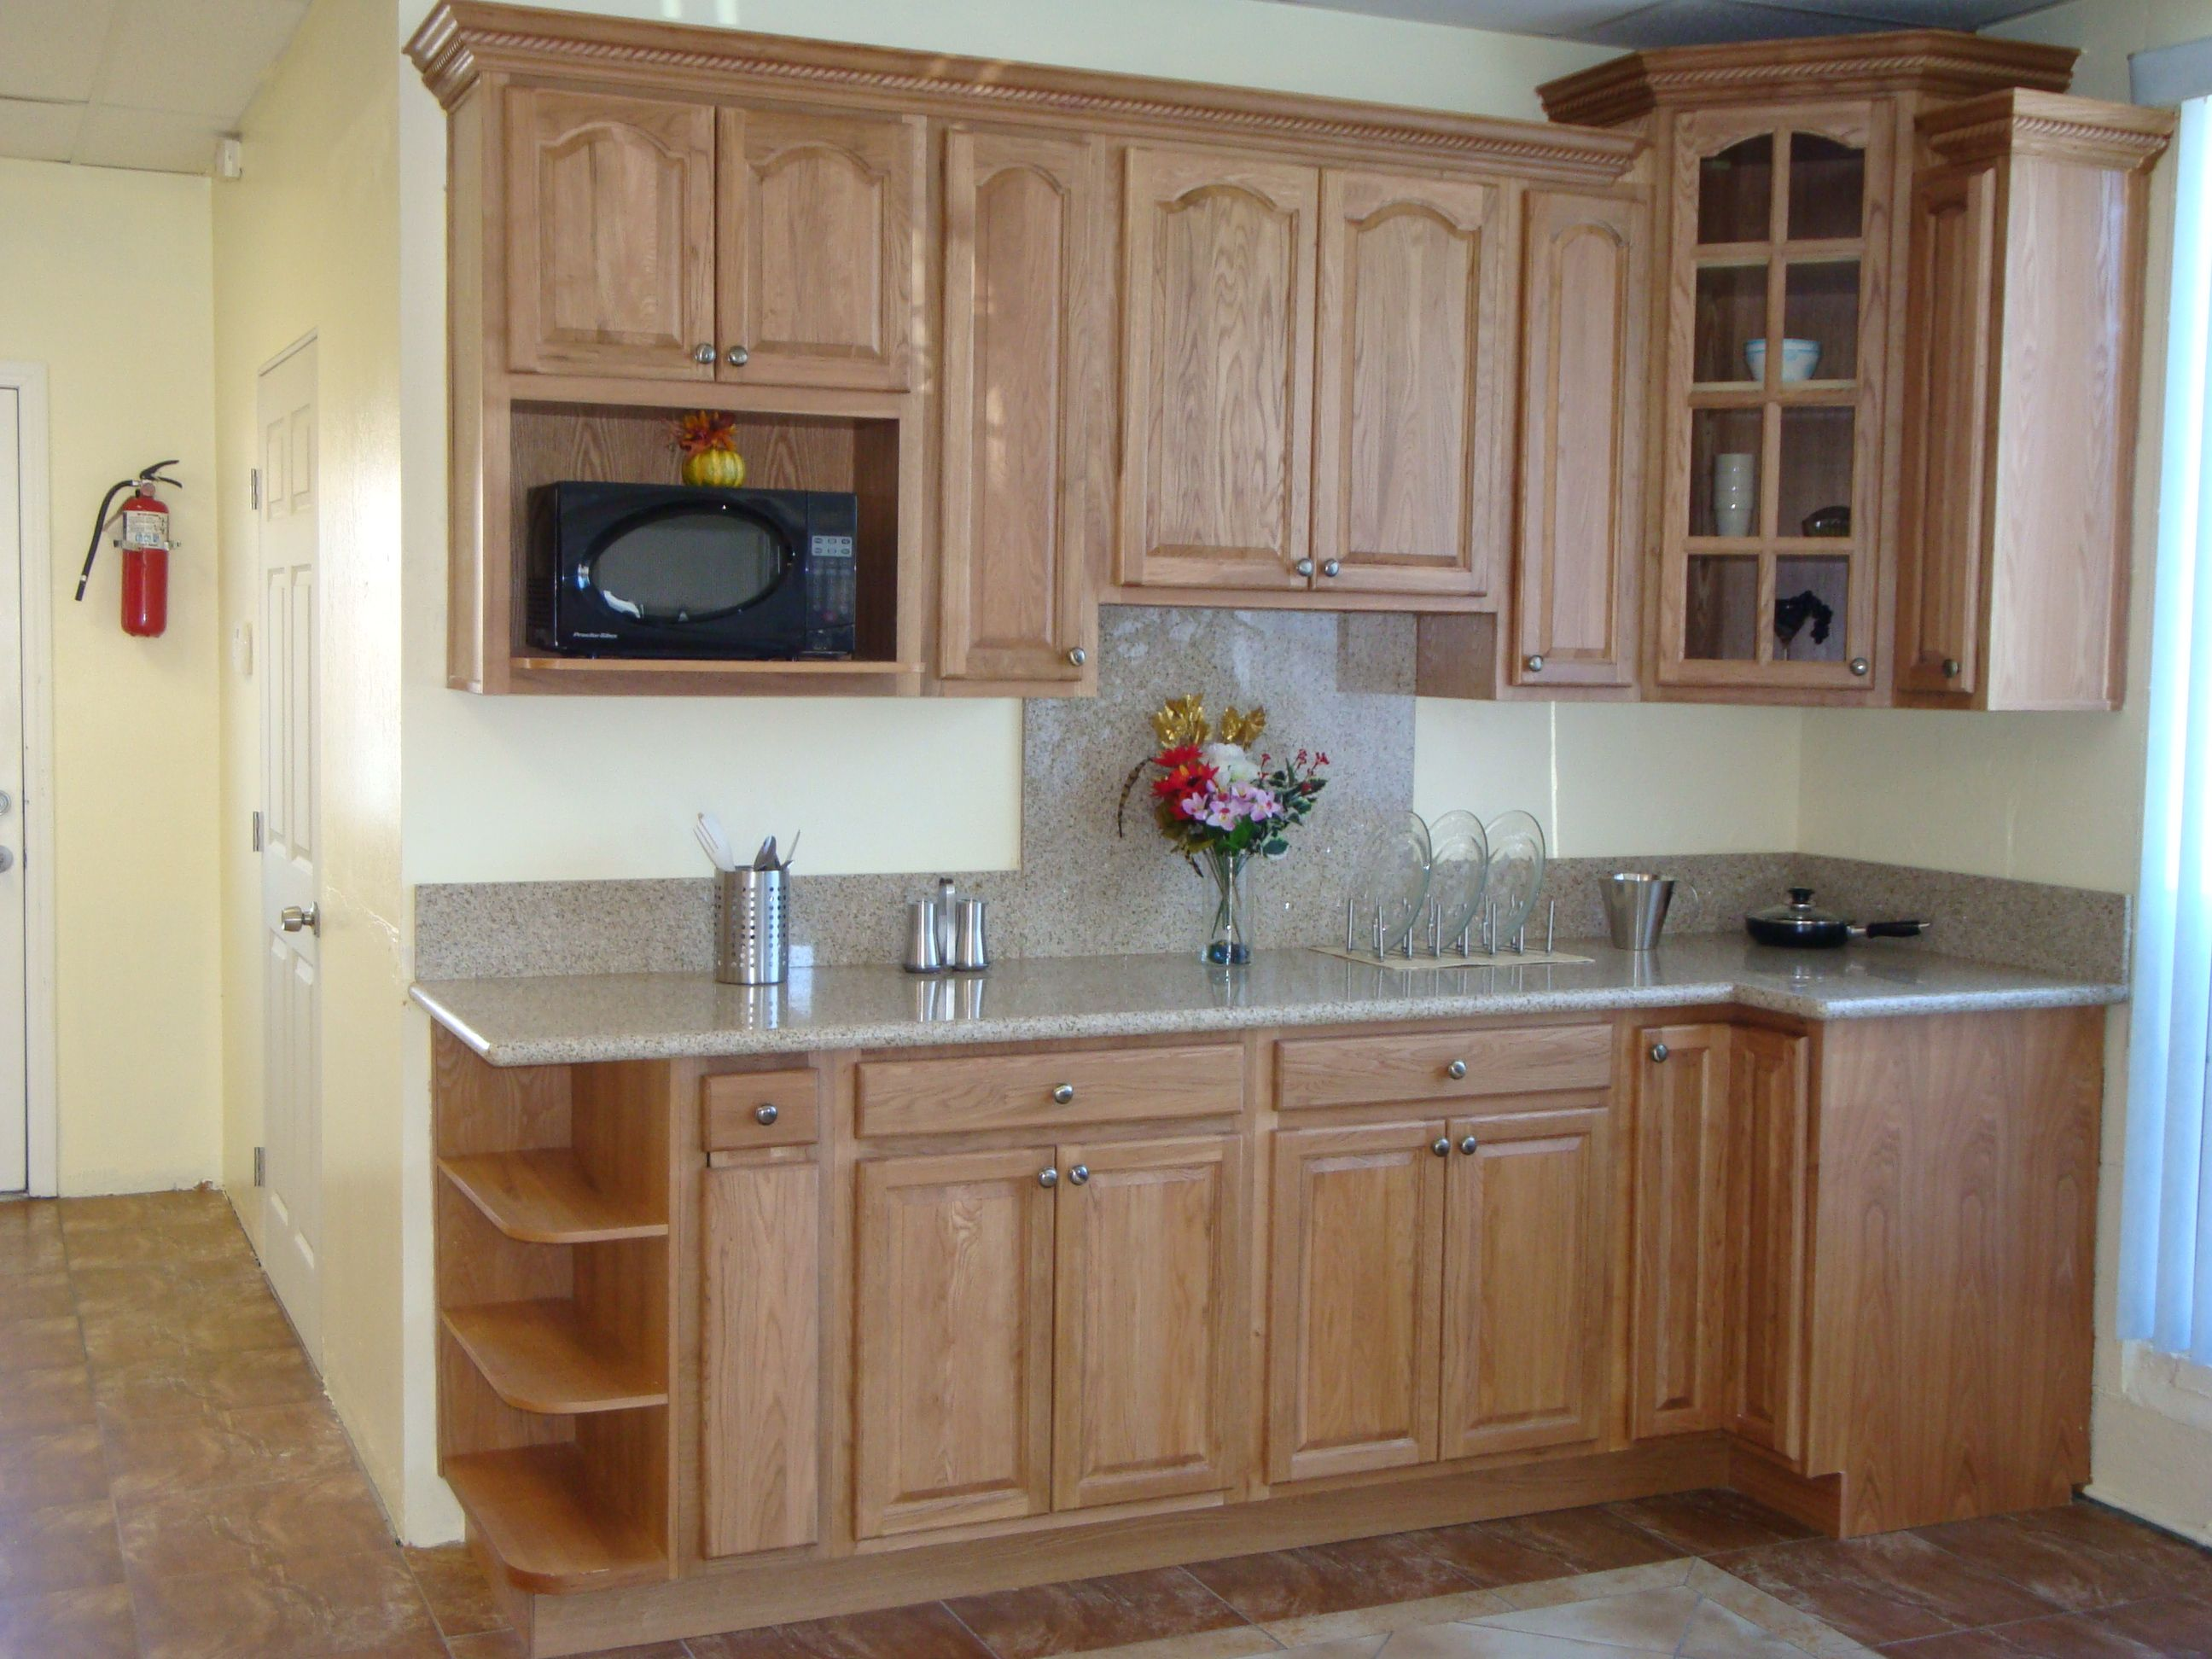 Kitchen Curved Kitchen Island With White Quartz Countertop And Sink L Shaped Wood Unfinished Kitchen Cabinets Rustic Kitchen Cabinets Custom Kitchen Cabinets